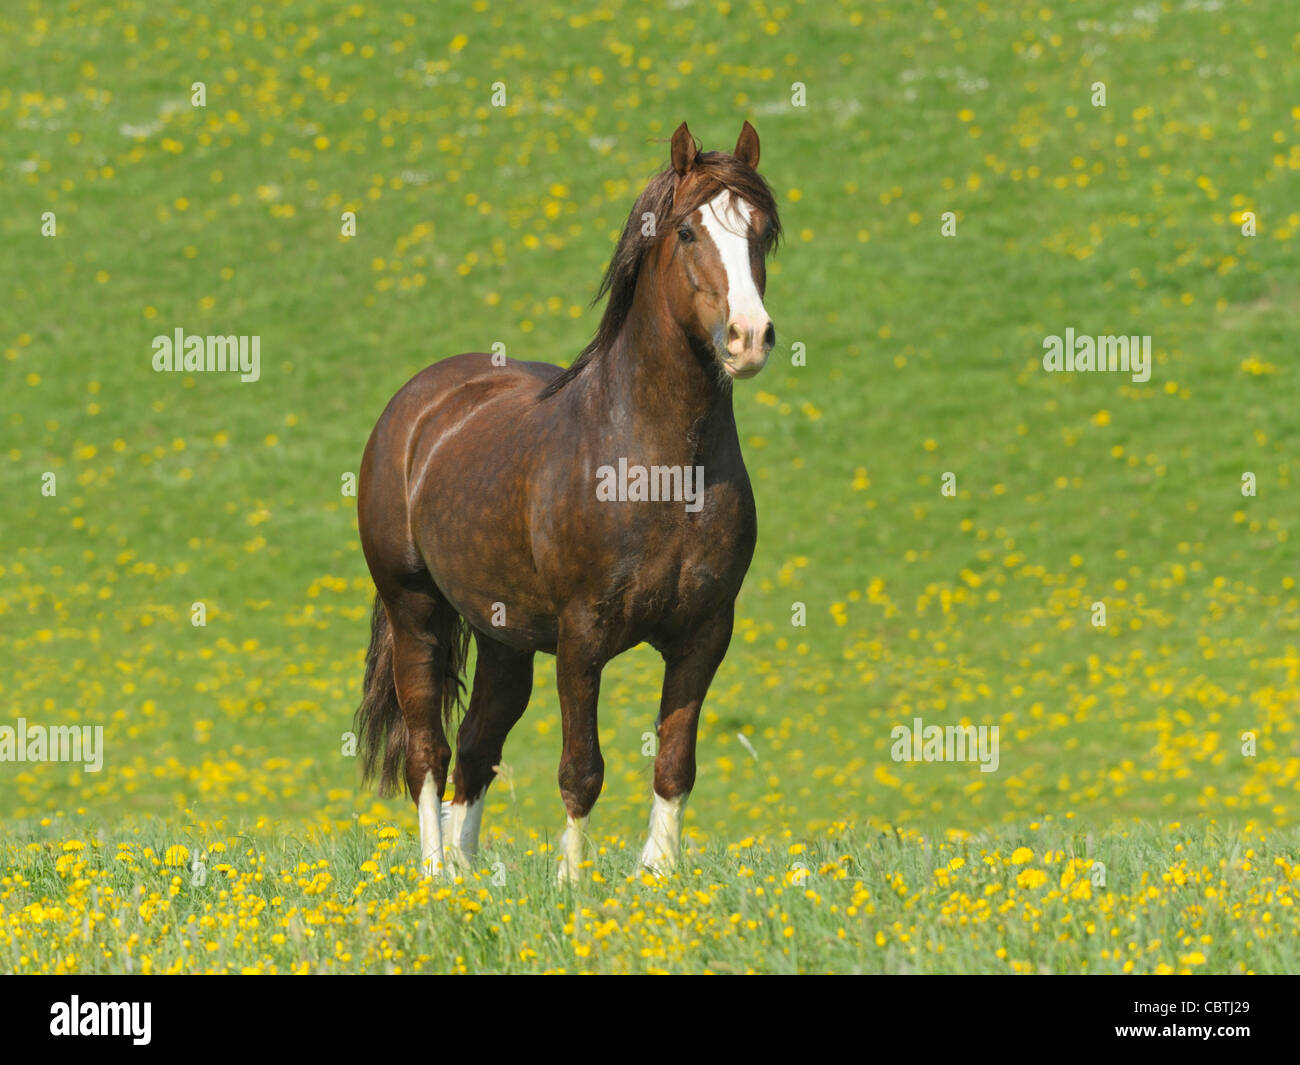 Welsh pony stallion in the field - Stock Image